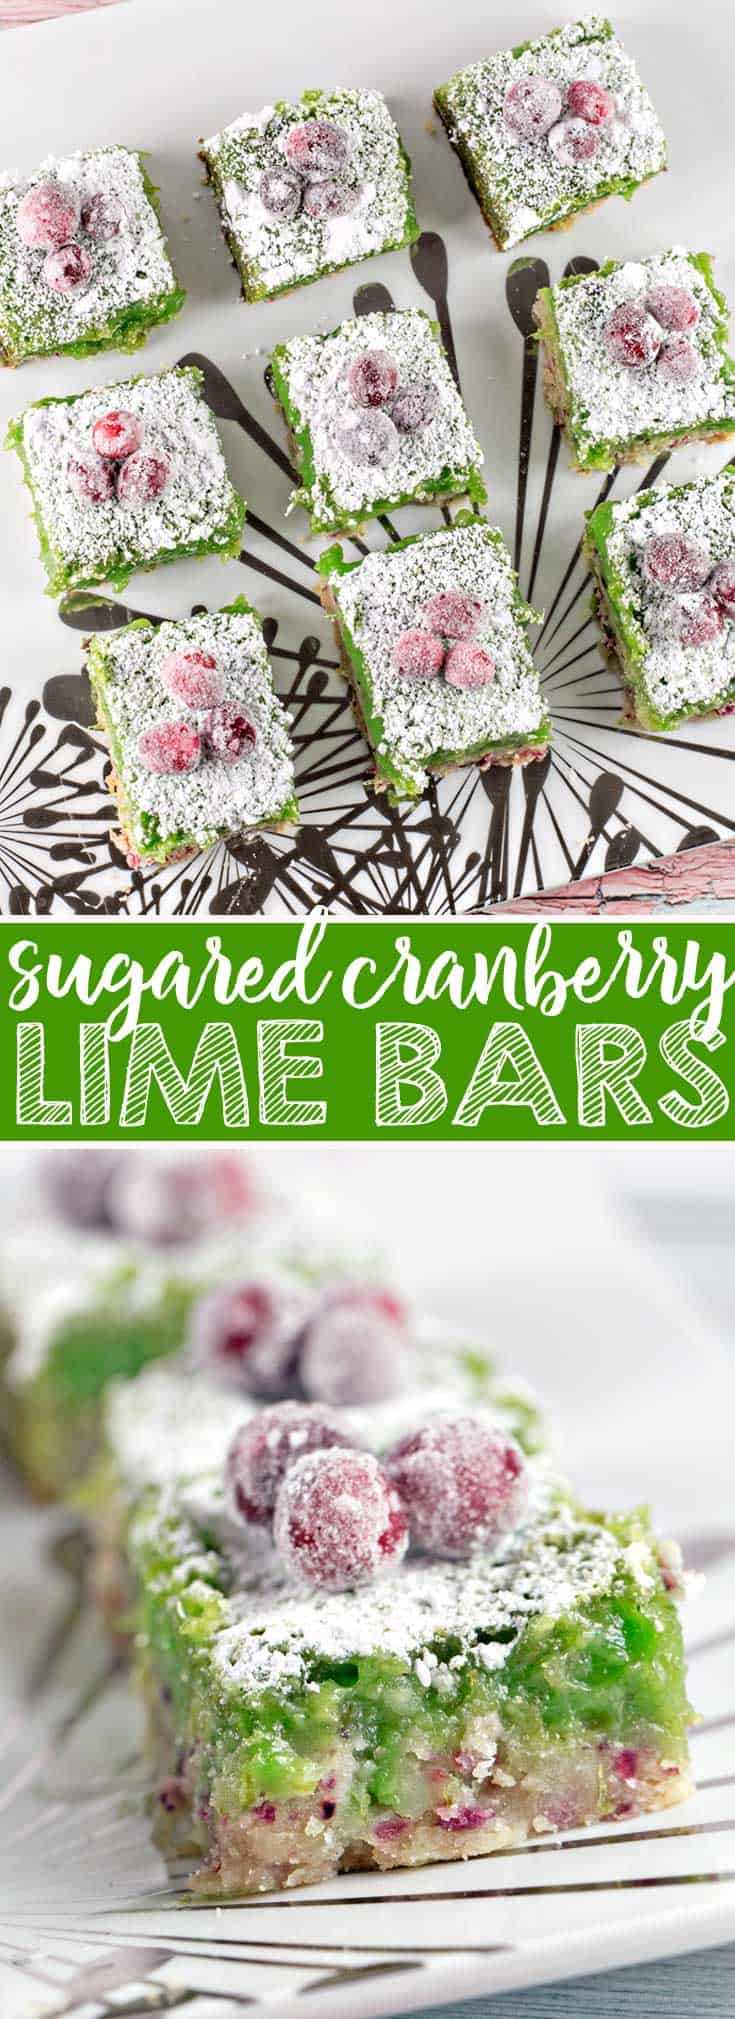 Cranberry Lime Bars: adios, bland lime bars - these cranberry lime bars pack a serious sweet-tart citrusy punch! {Bunsen Burner Bakery} #limebars #sugaredcranbreries #christmas #dessertbars